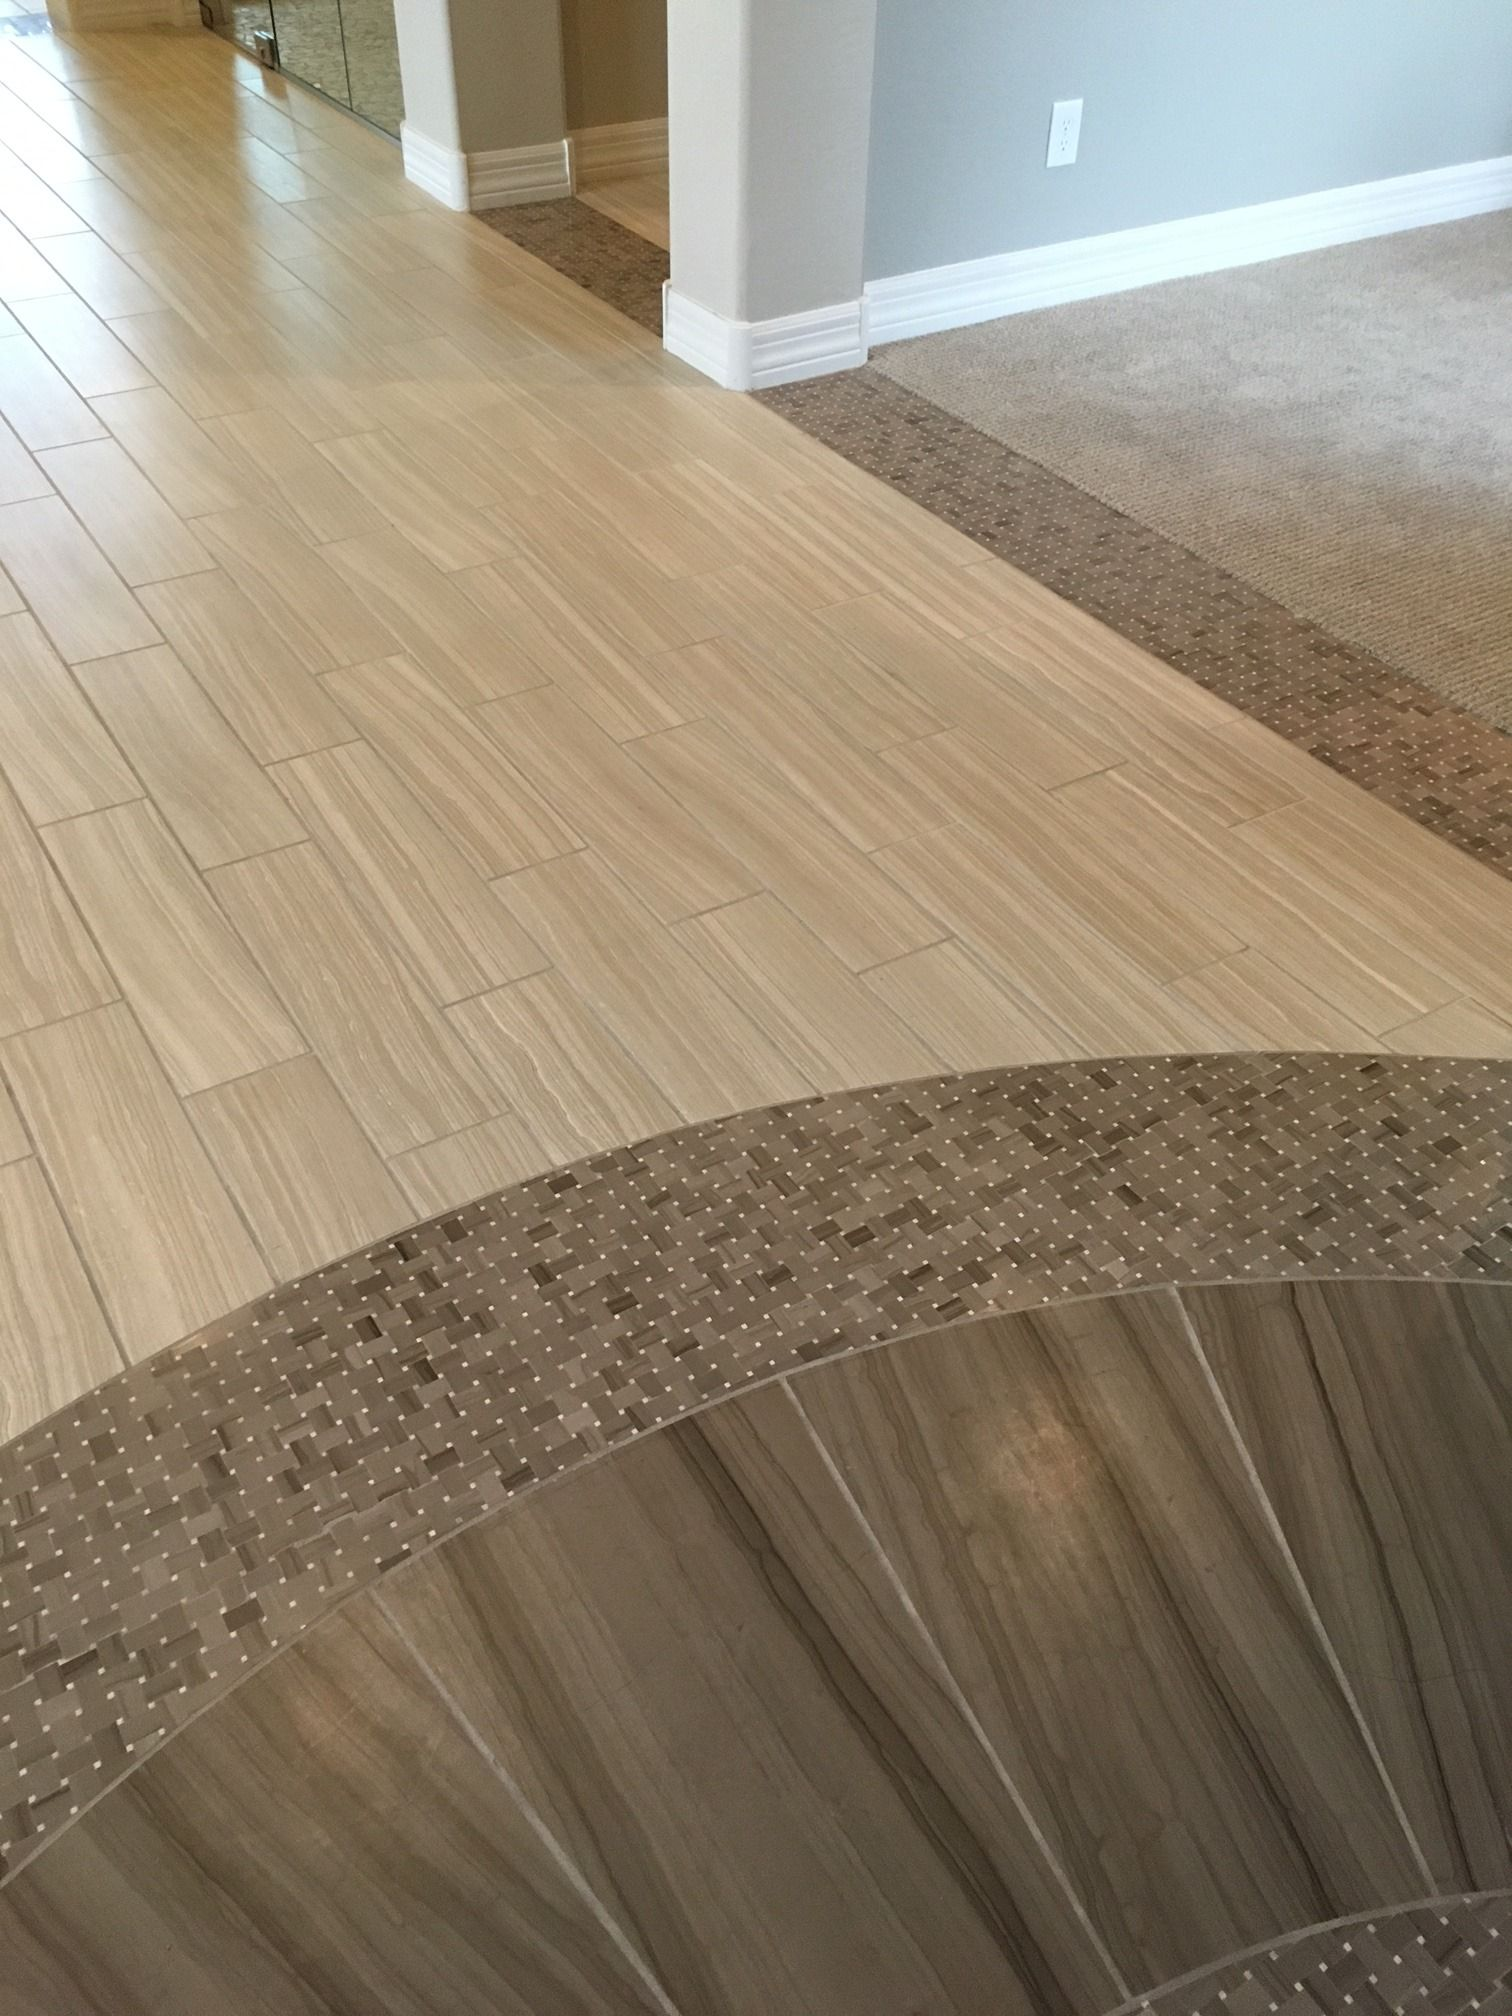 The use of our hampton series creates a breathtaking medallion in unibond wood floor tile adhesive whether the subfloor is effective at supporting tile you need to understand before you ar dailygadgetfo Choice Image